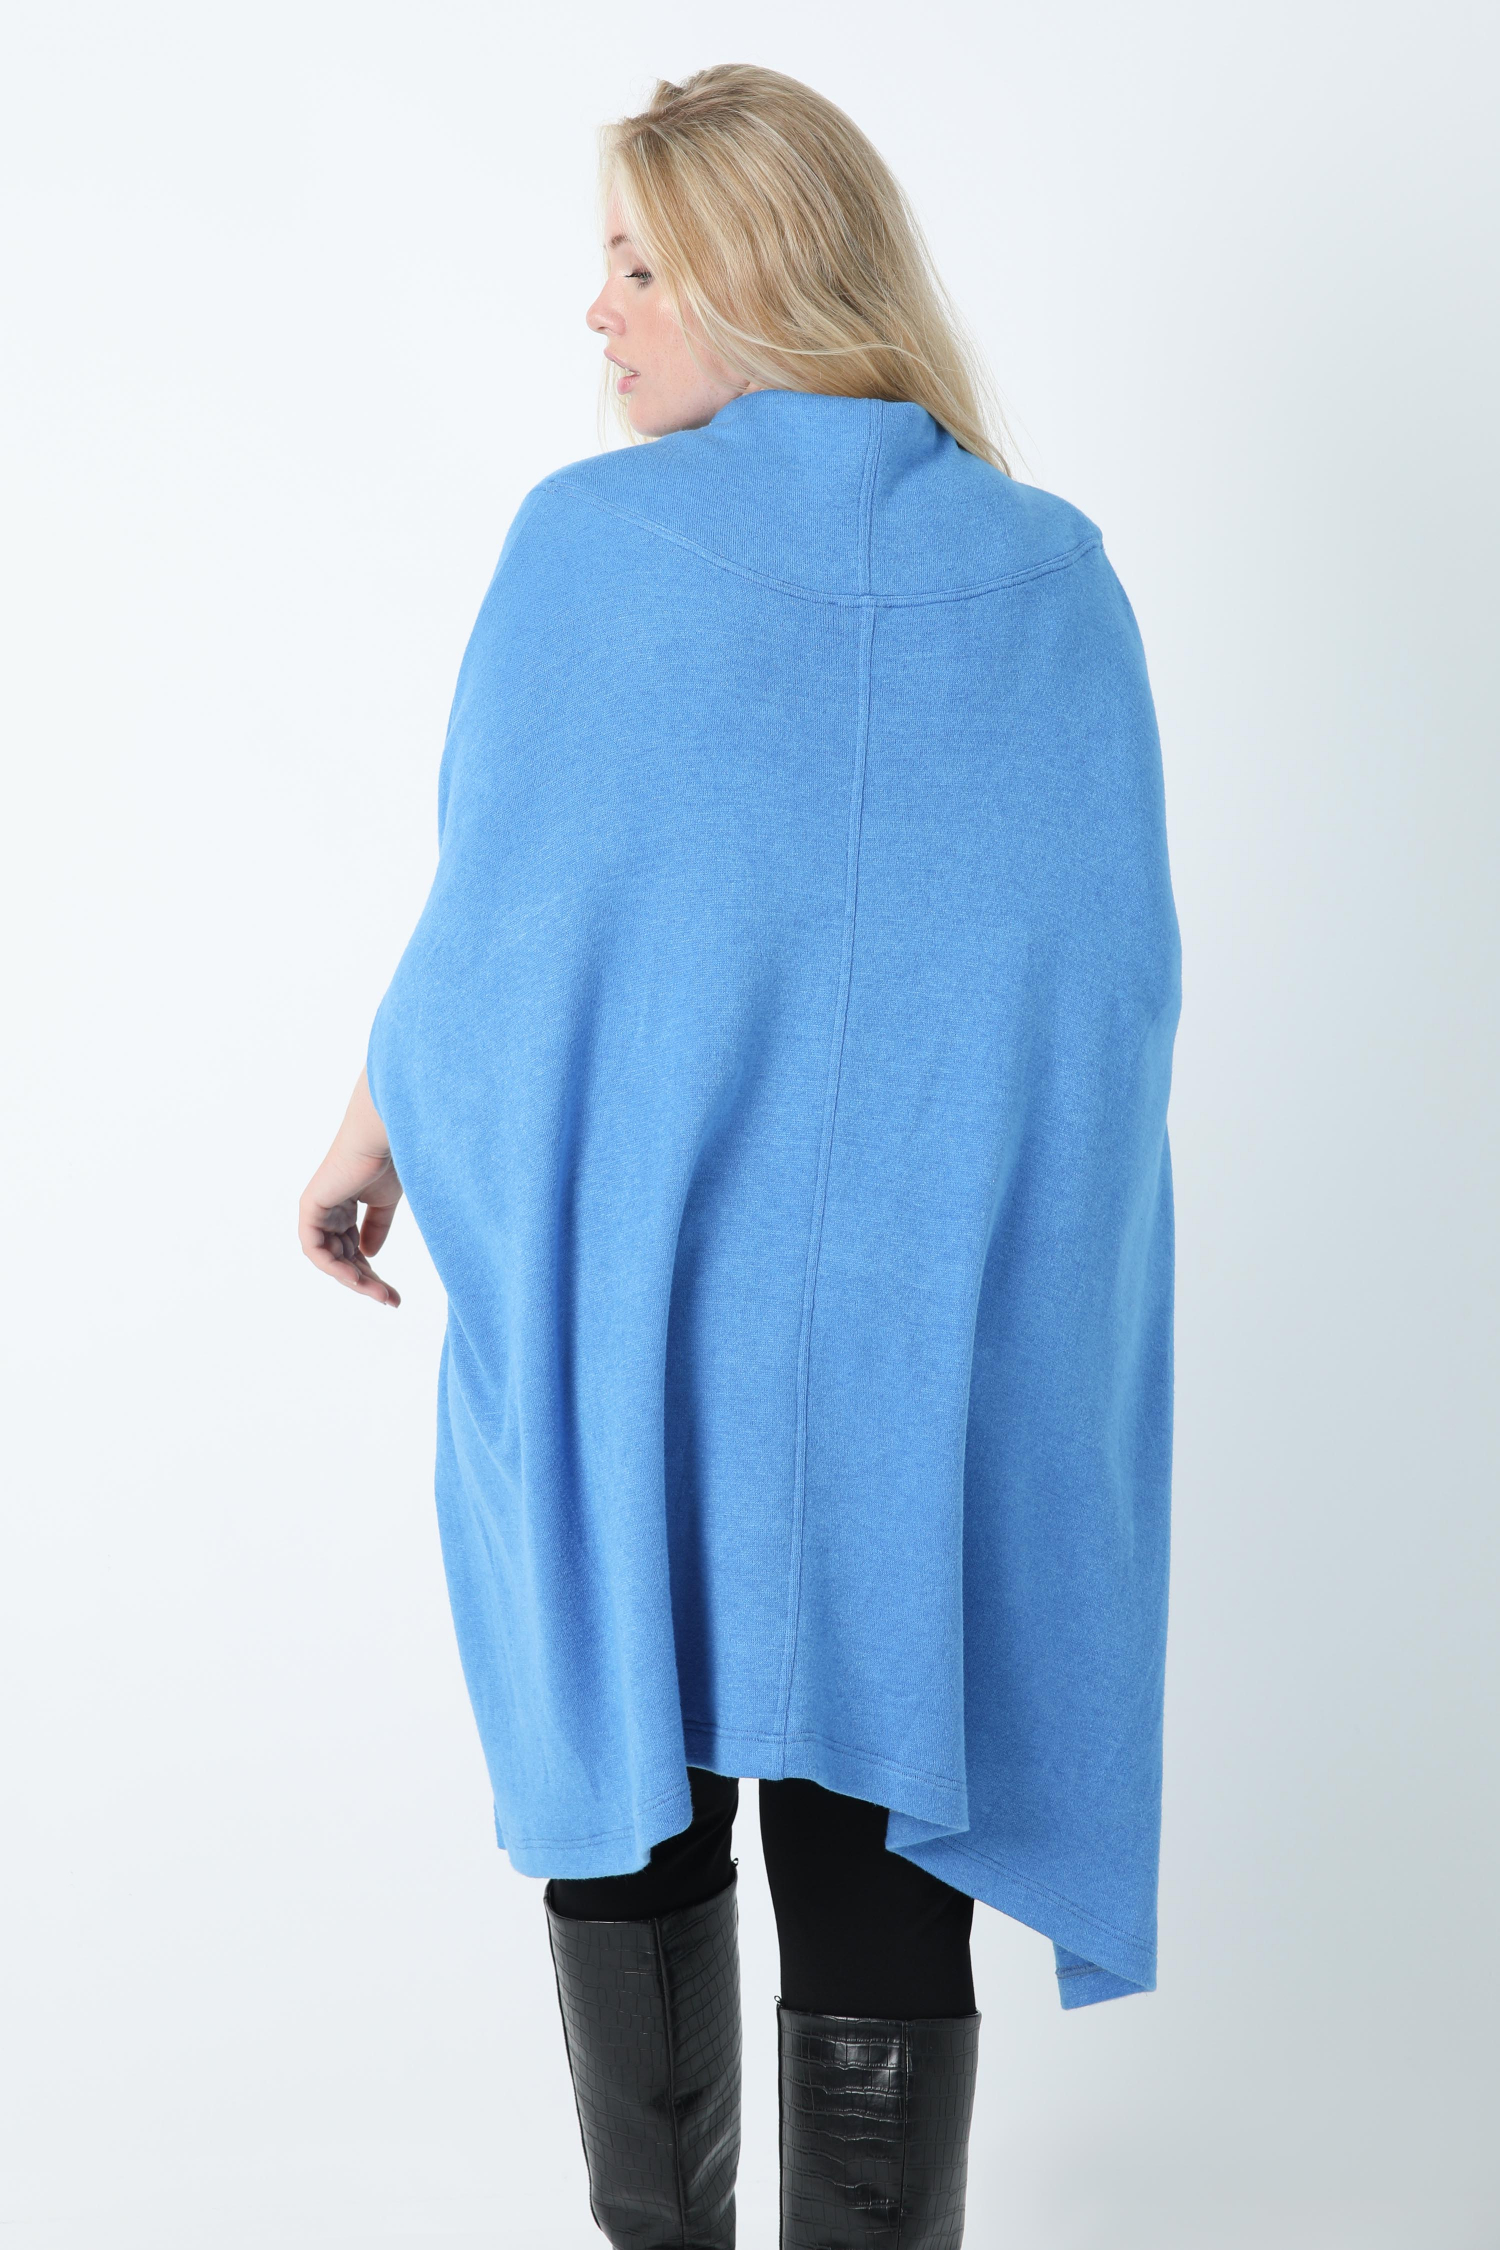 Pancho with wide plain knit collar